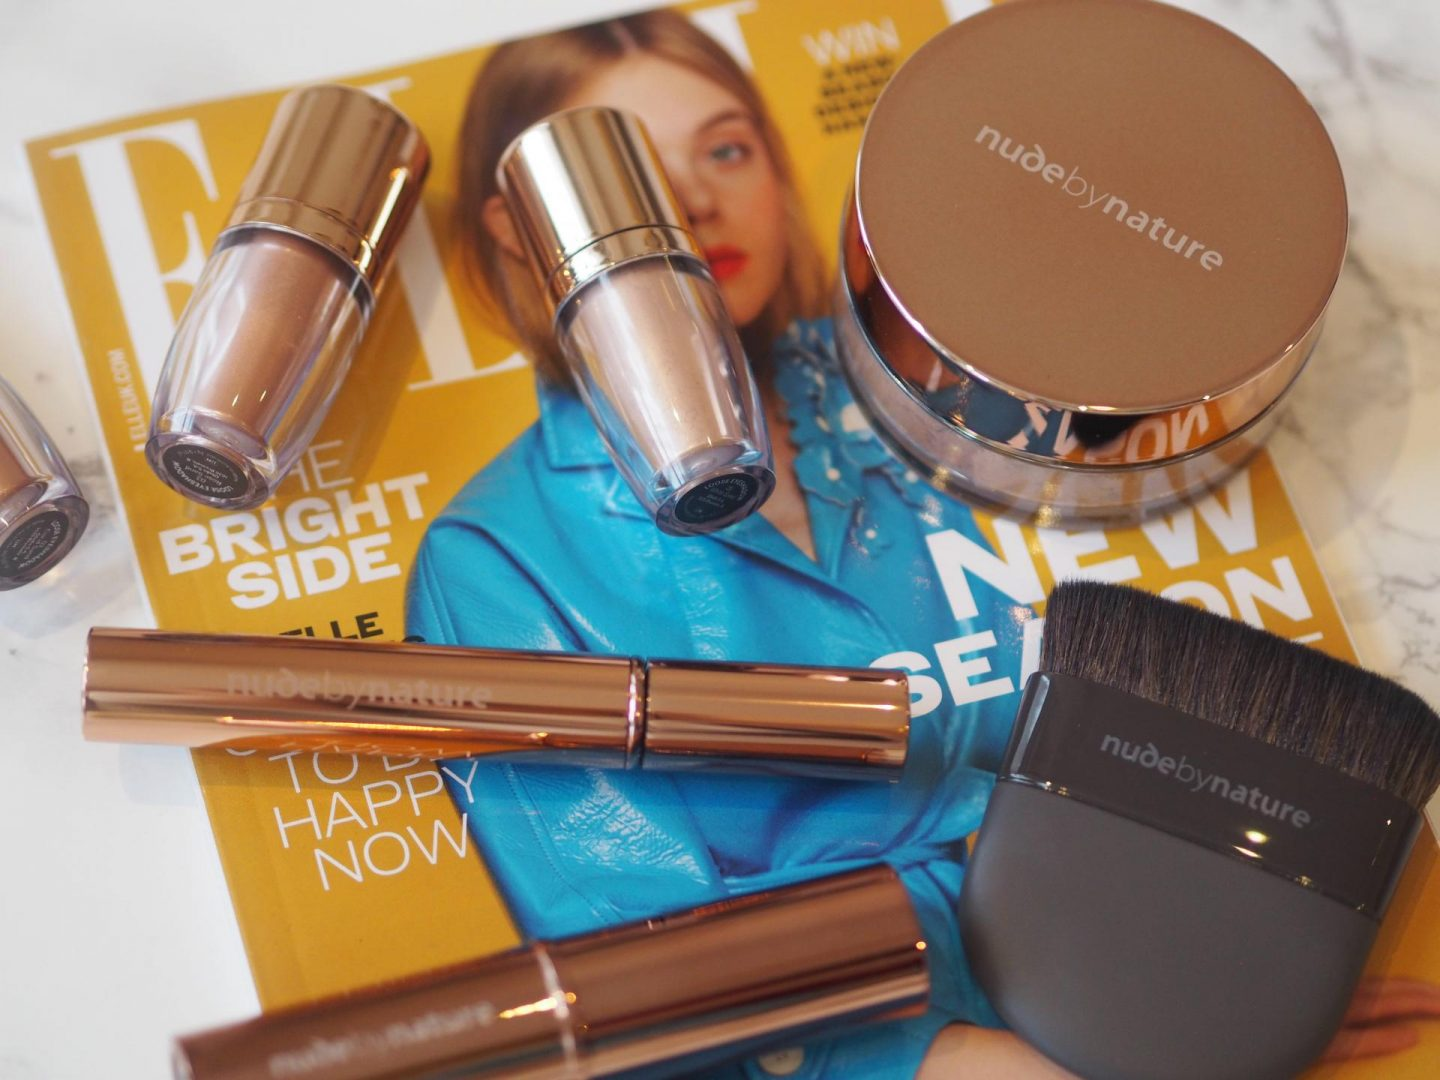 ASOS Beauty and Make-up Haul and Nude by Nature